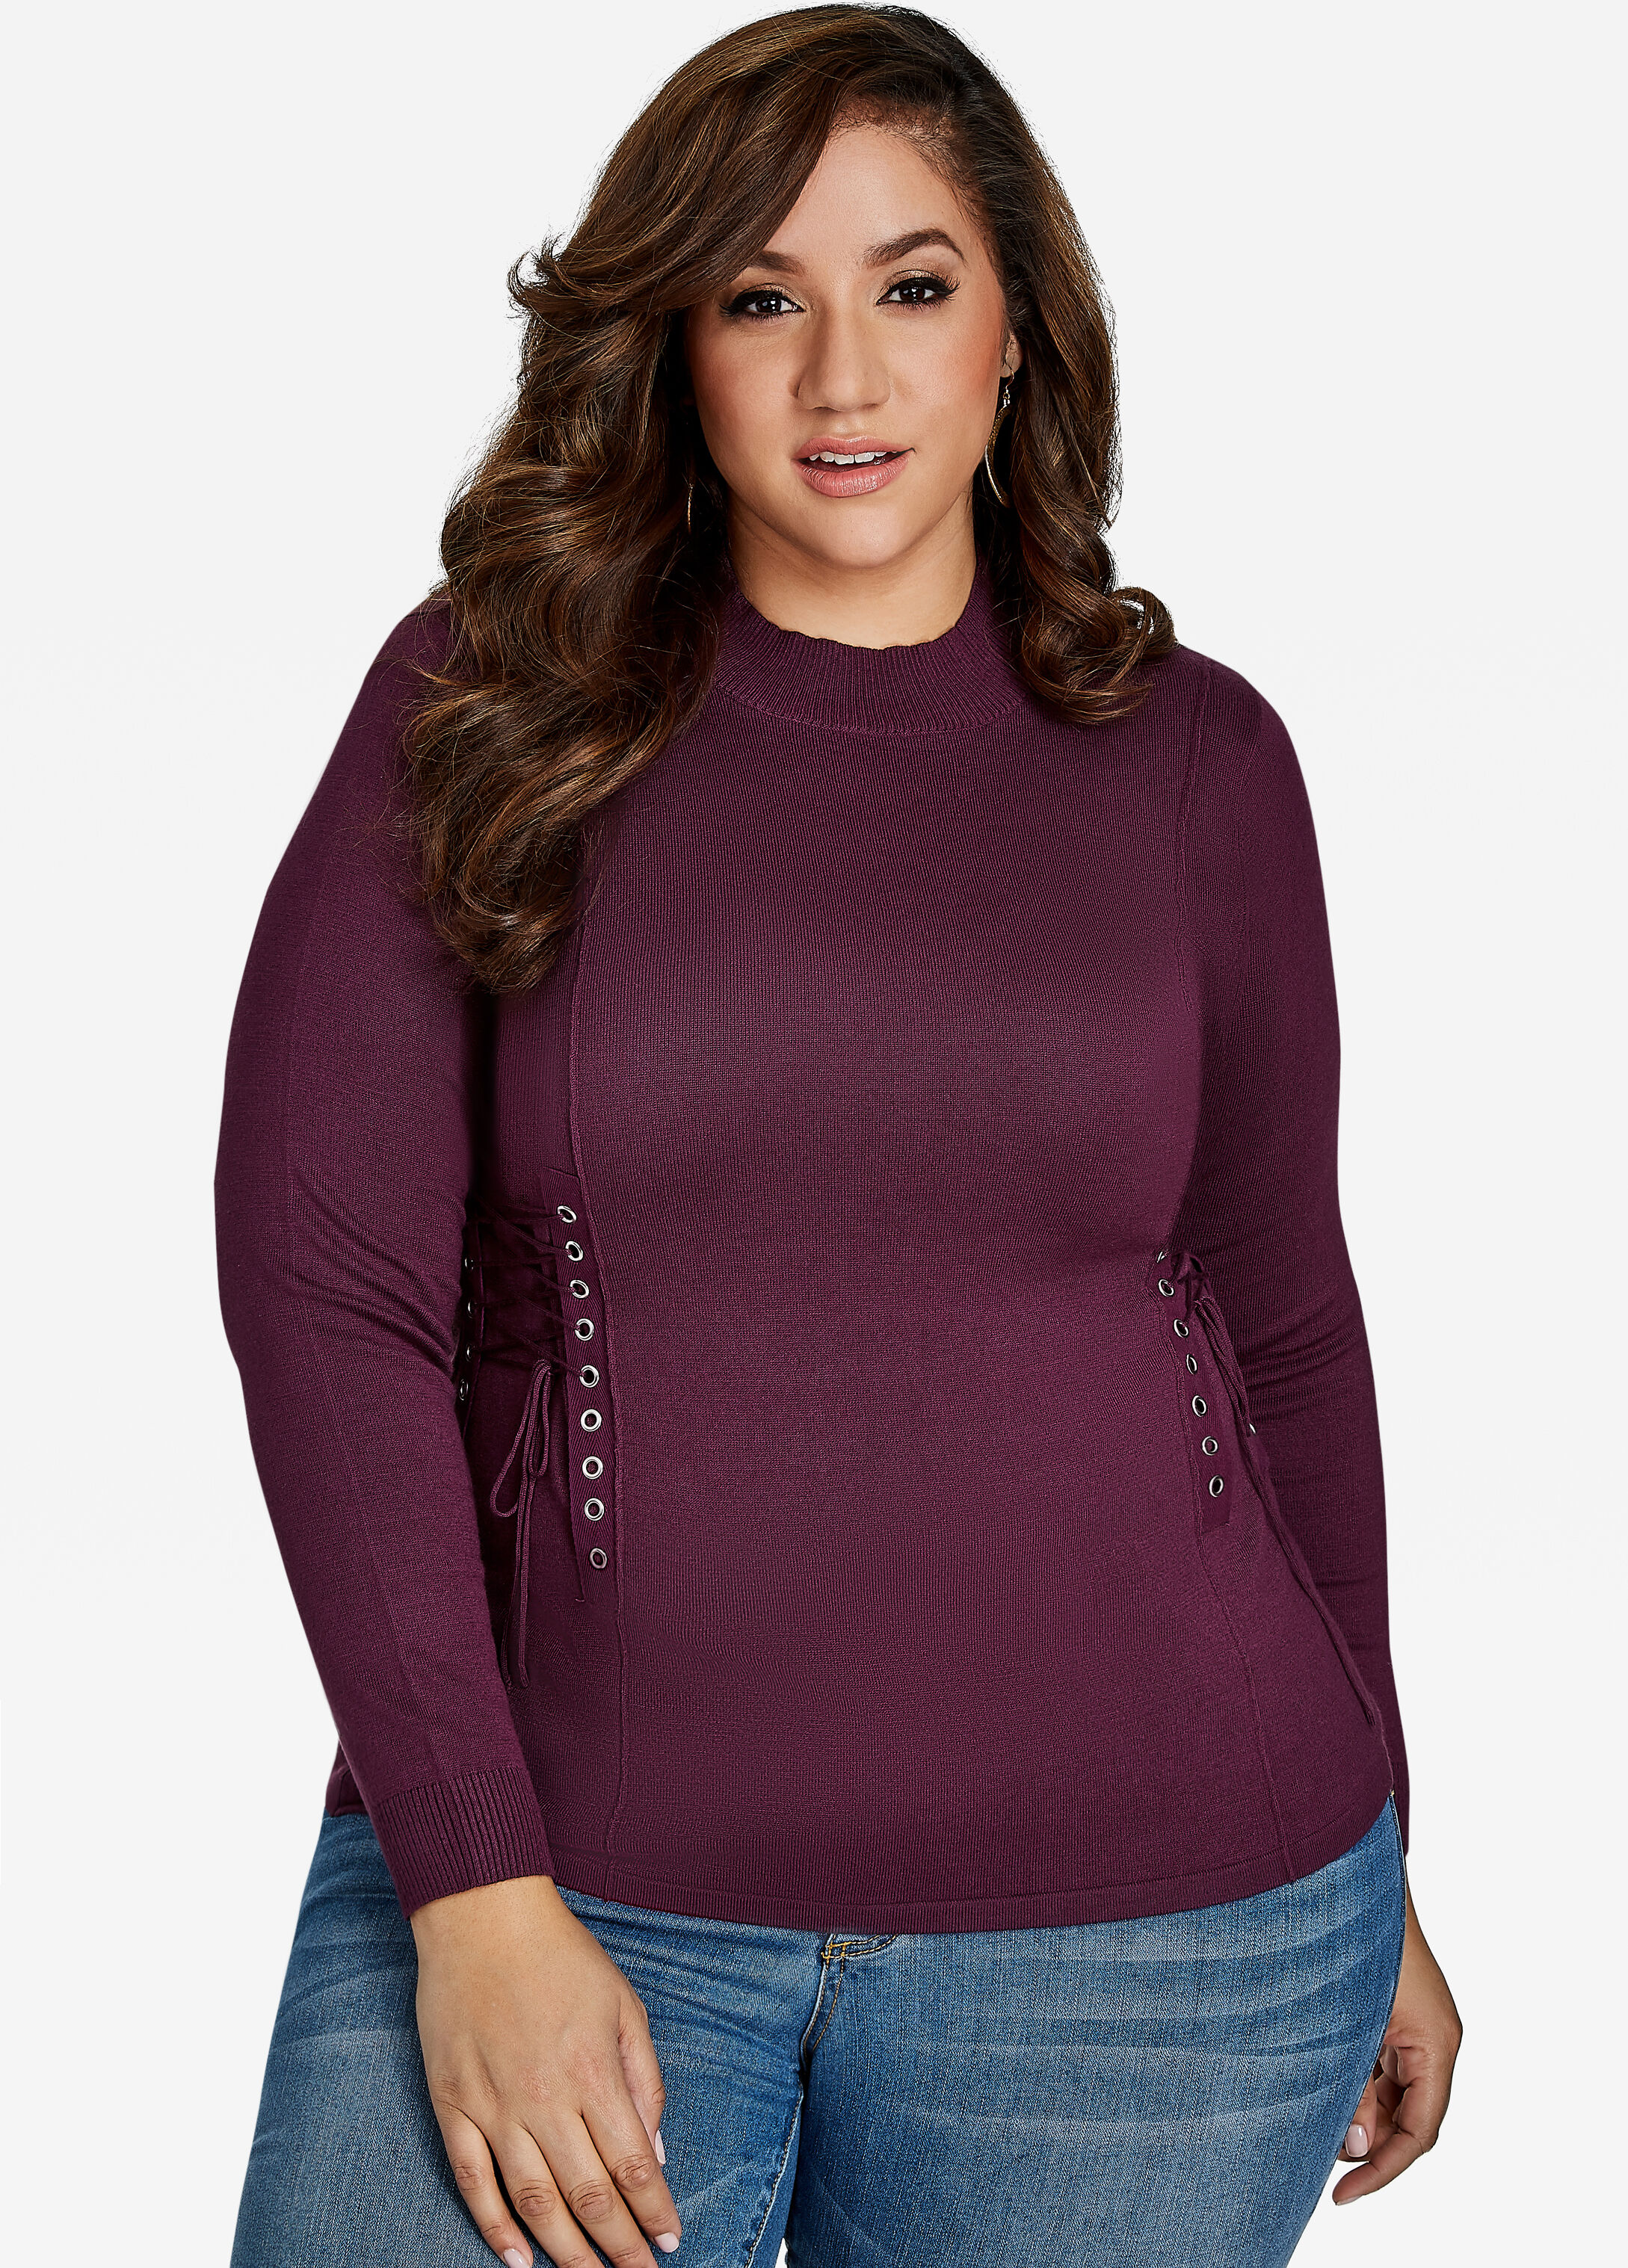 Lace Up Sweater Italian Plum - Clearance